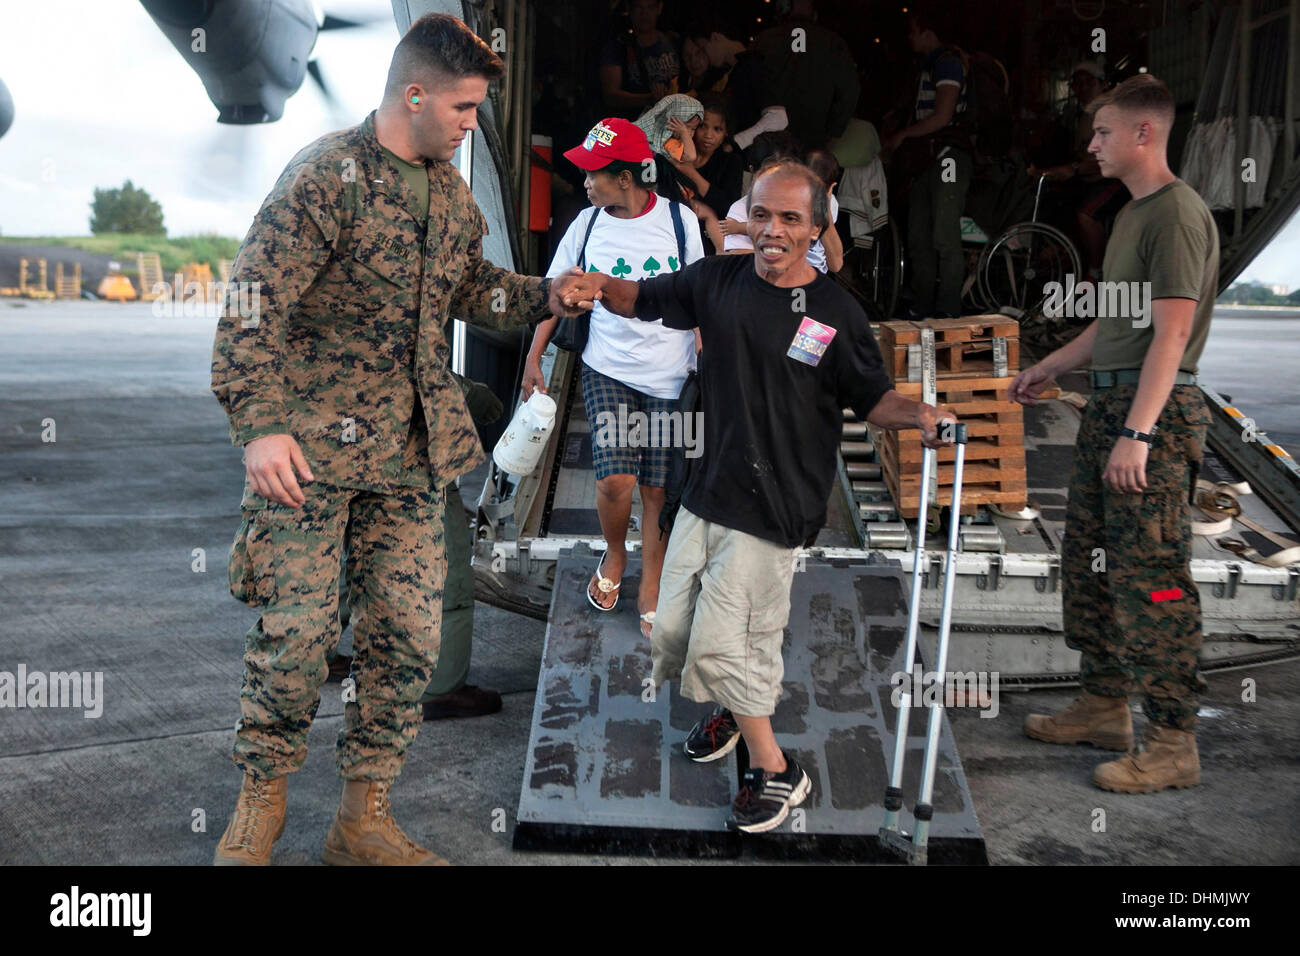 US Marines help offload Filipino civilians out of a U.S. Marine C-130 Hercules aircraft at Villamor Air Base evacuated from Tacloban November 12, 2013 in Manila, Philippines. The super typhoon devastated wide areas of the islands and killed as many as 10,000 people. - Stock Image